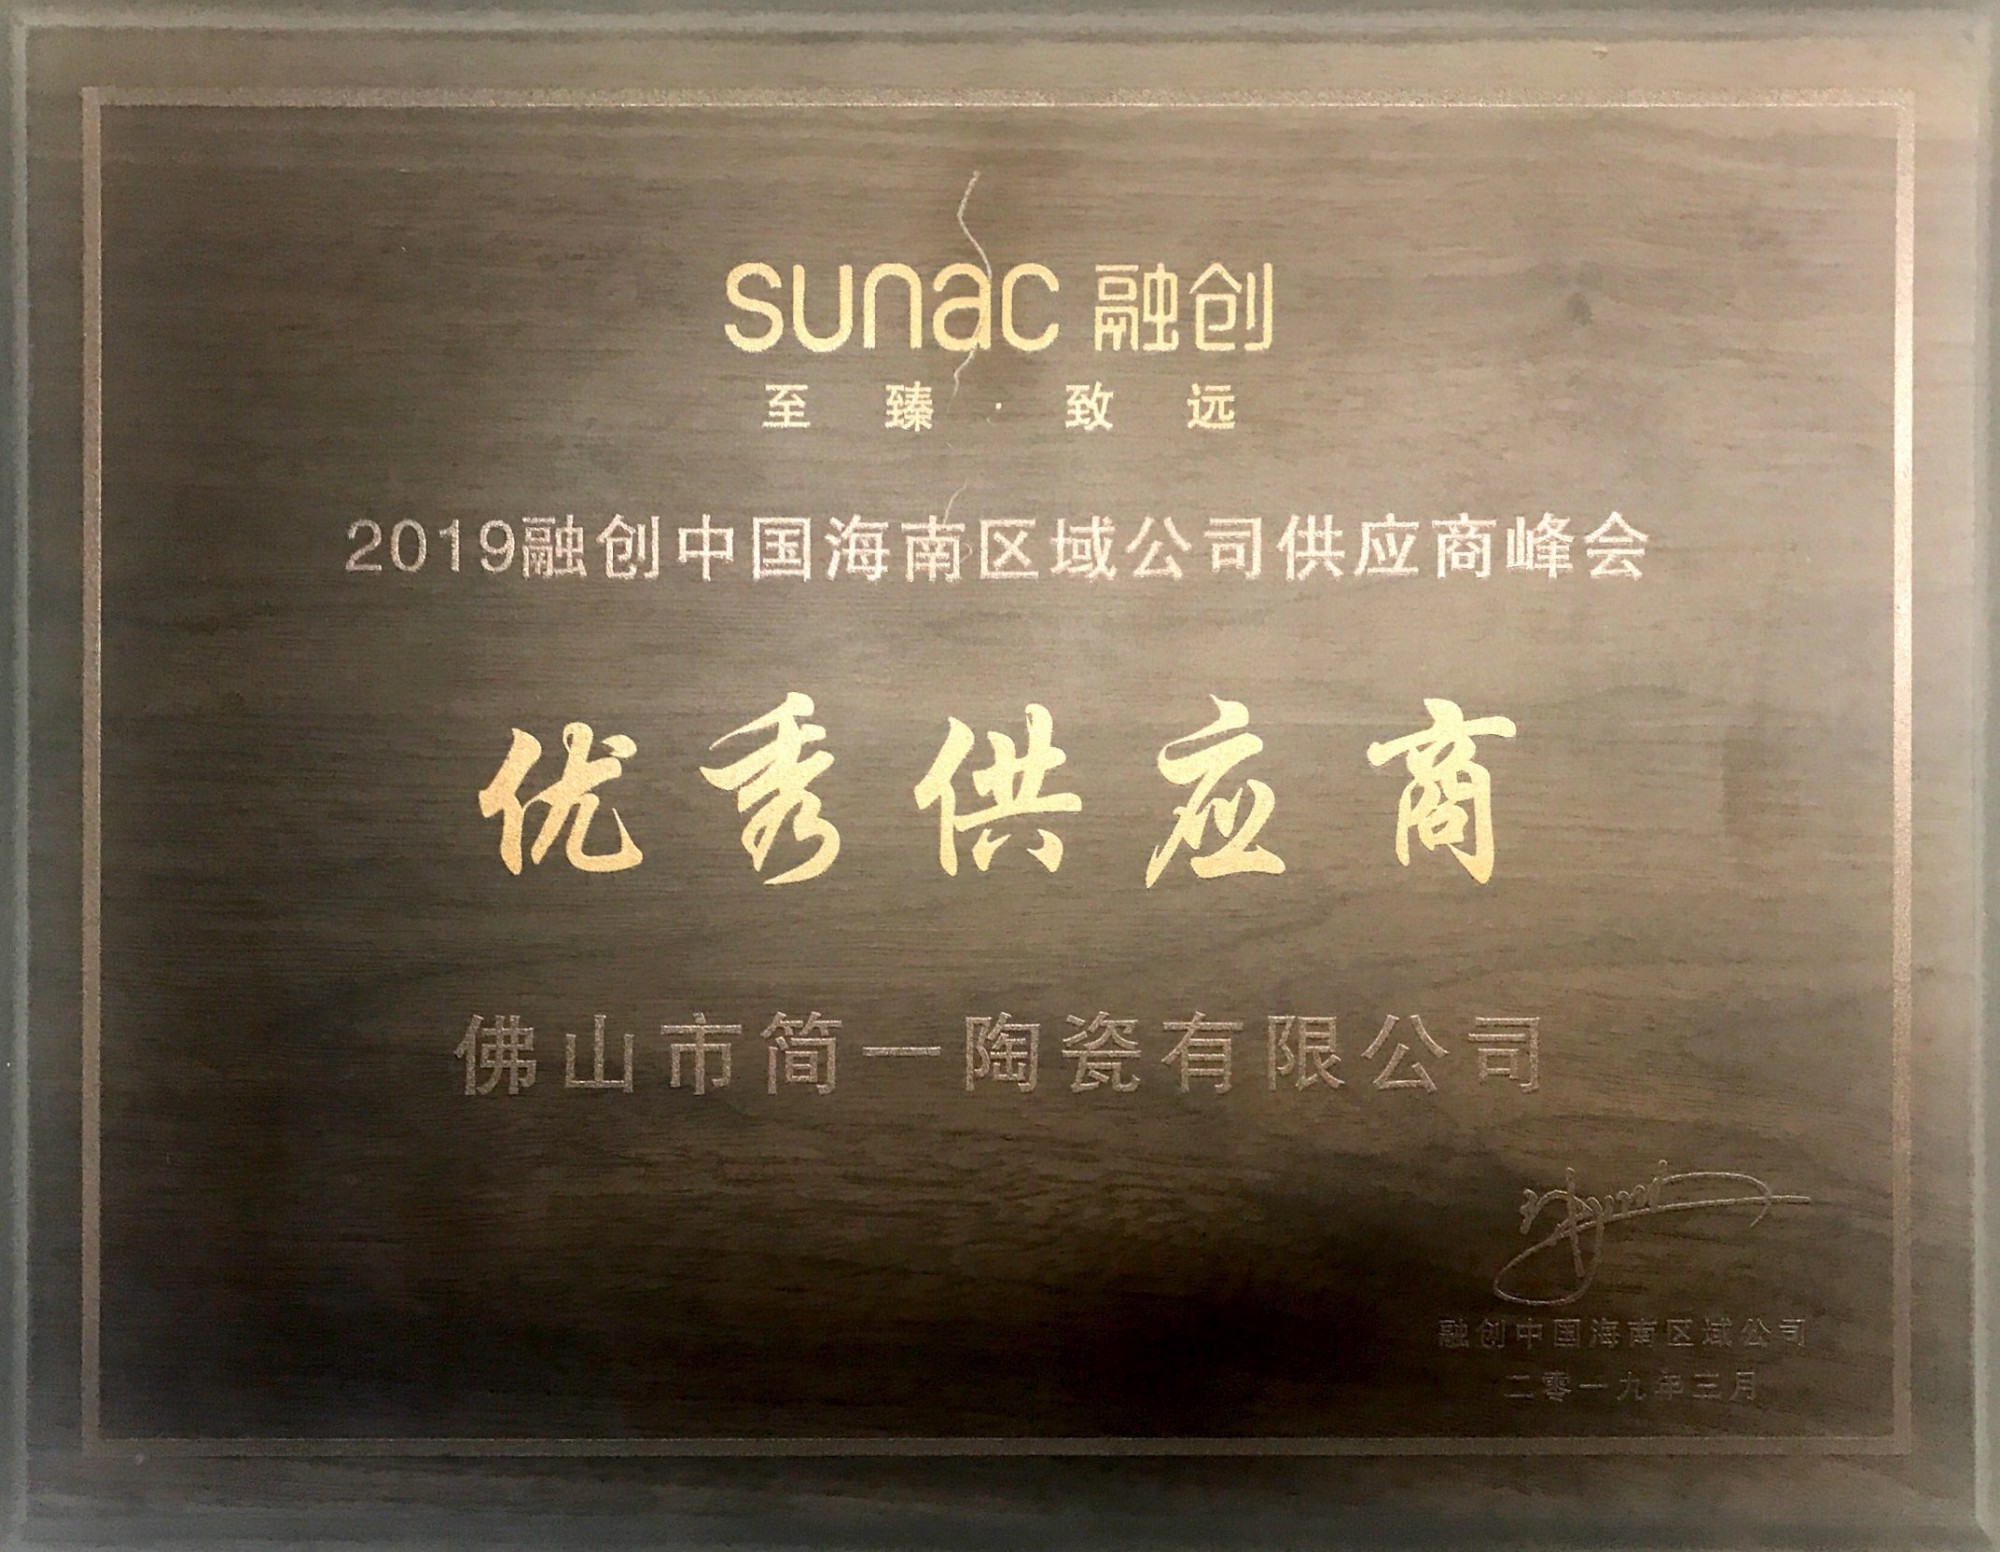 Outstanding Supplier of Sunac Real Estate